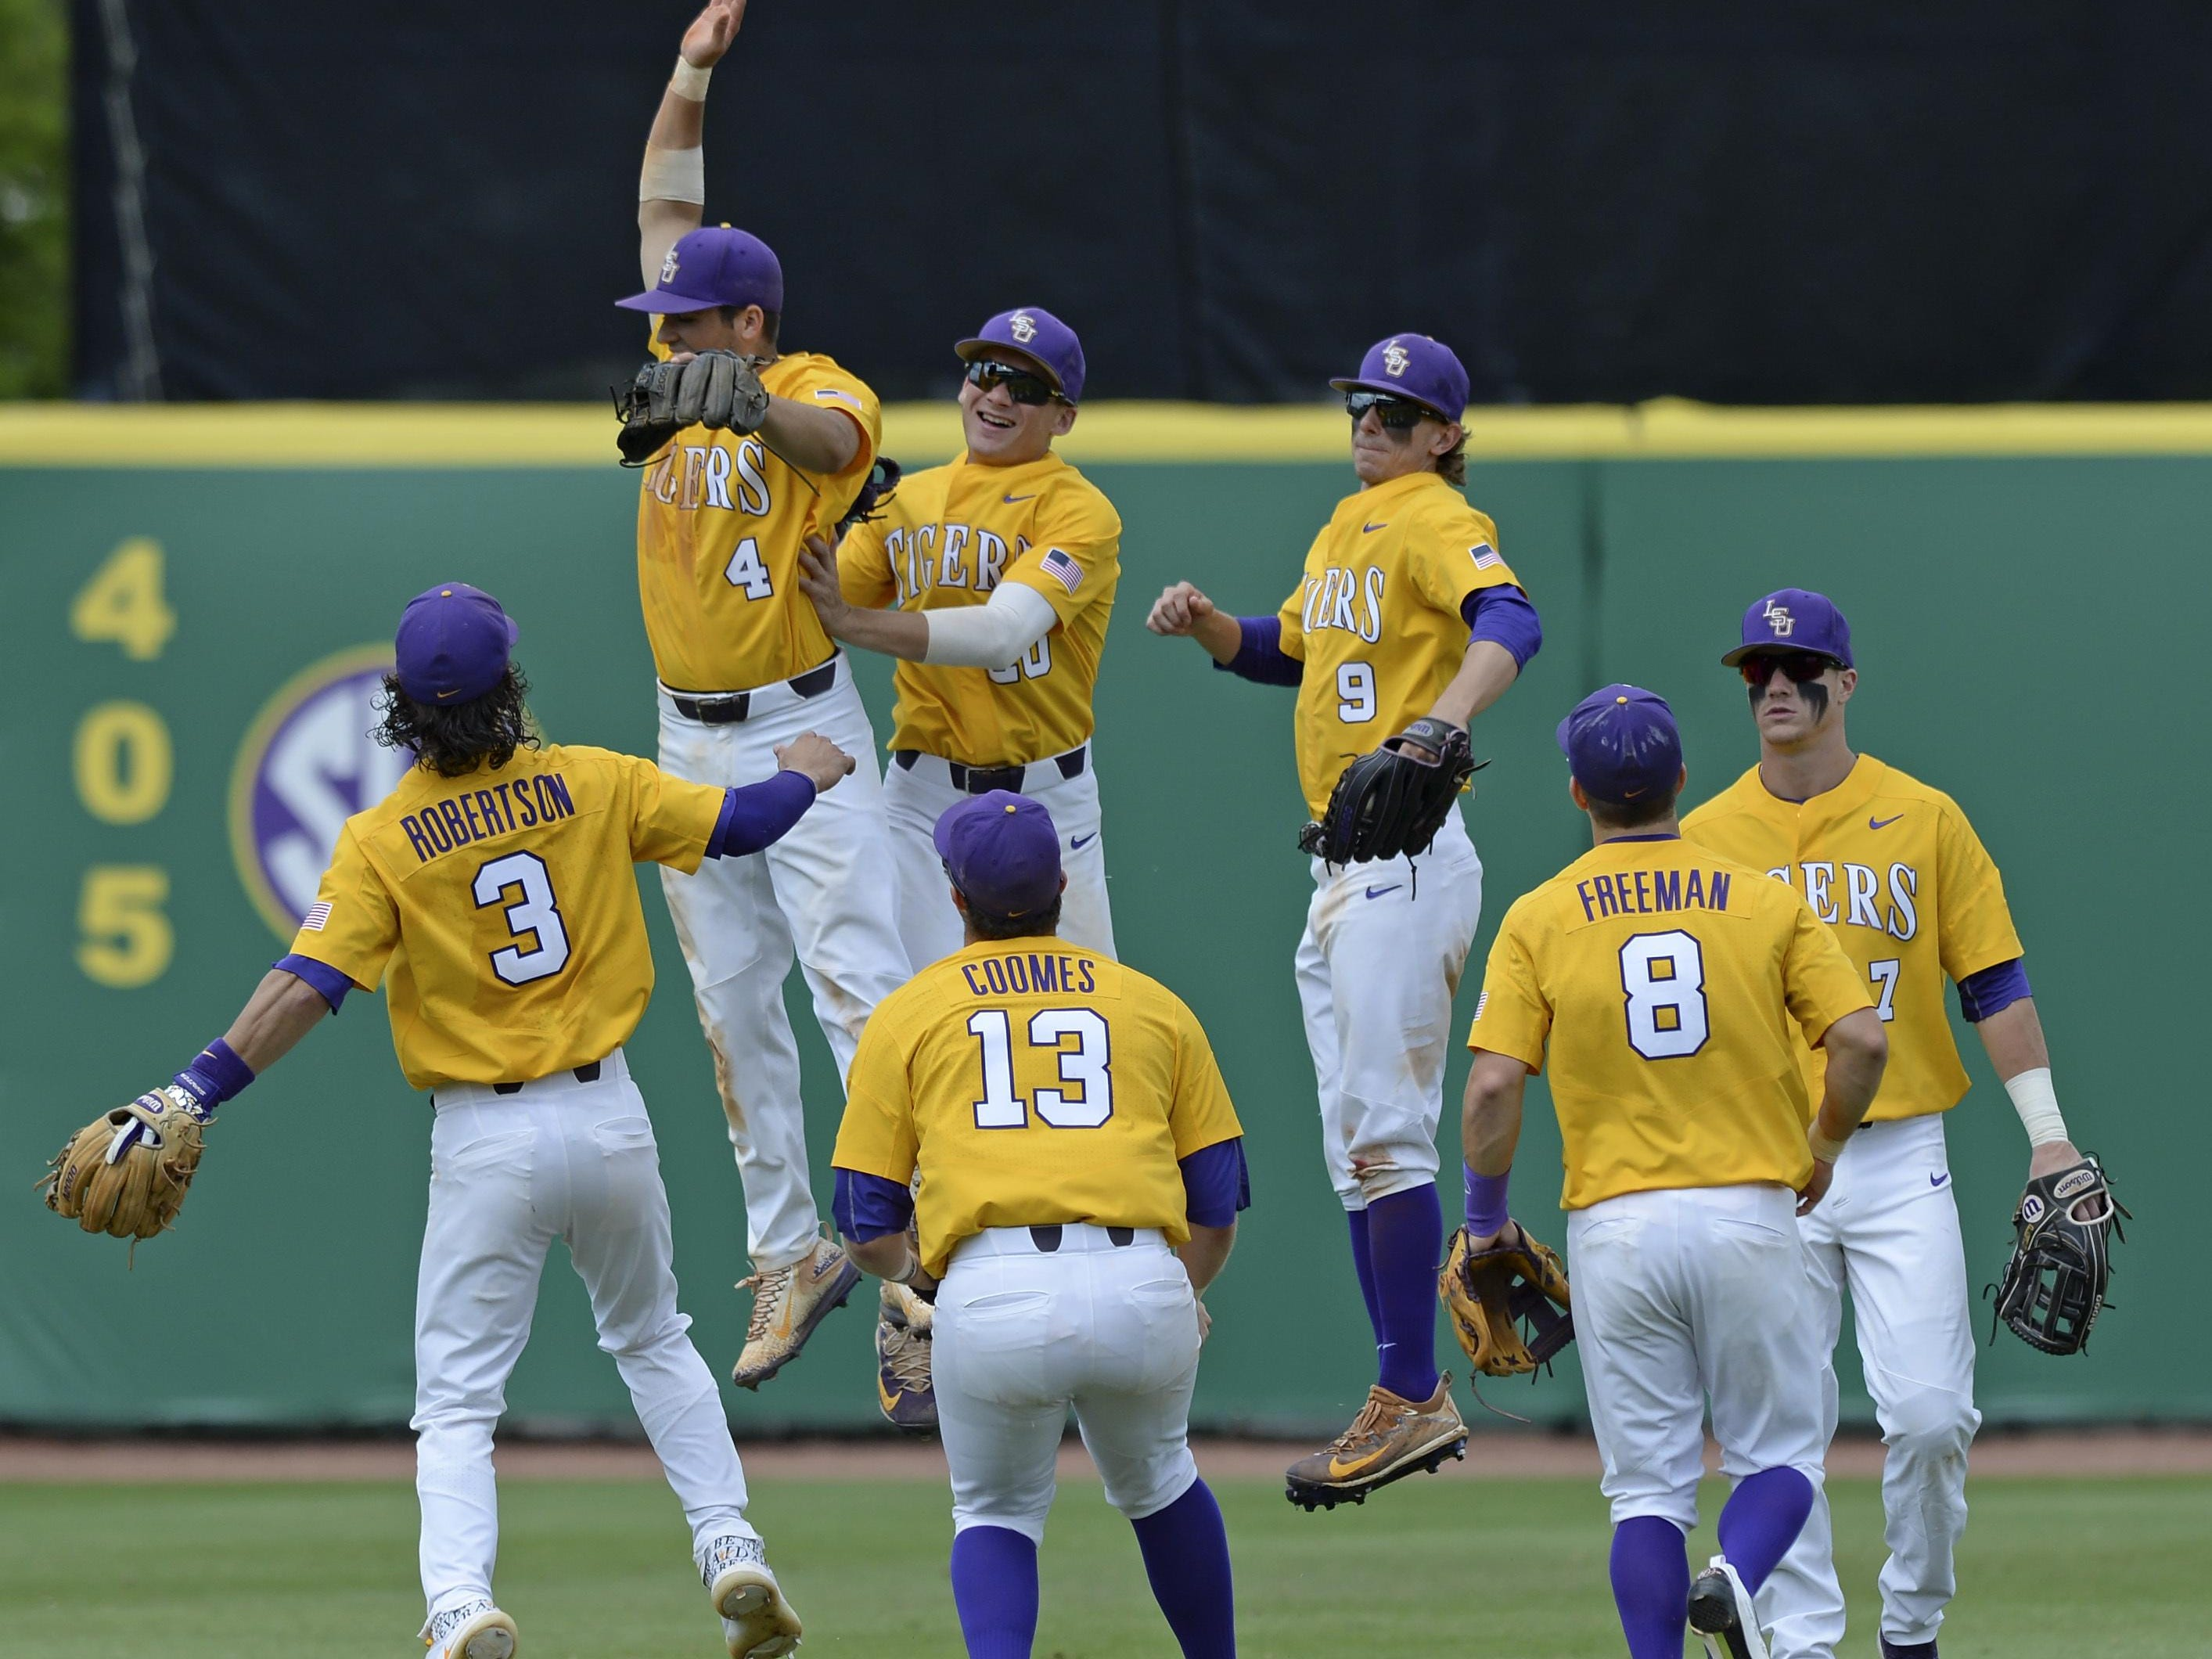 LSU celebrates a 9-1 win over Auburn on Saturday that finished a three-game series sweep. Auburn has lost six straight SEC games.